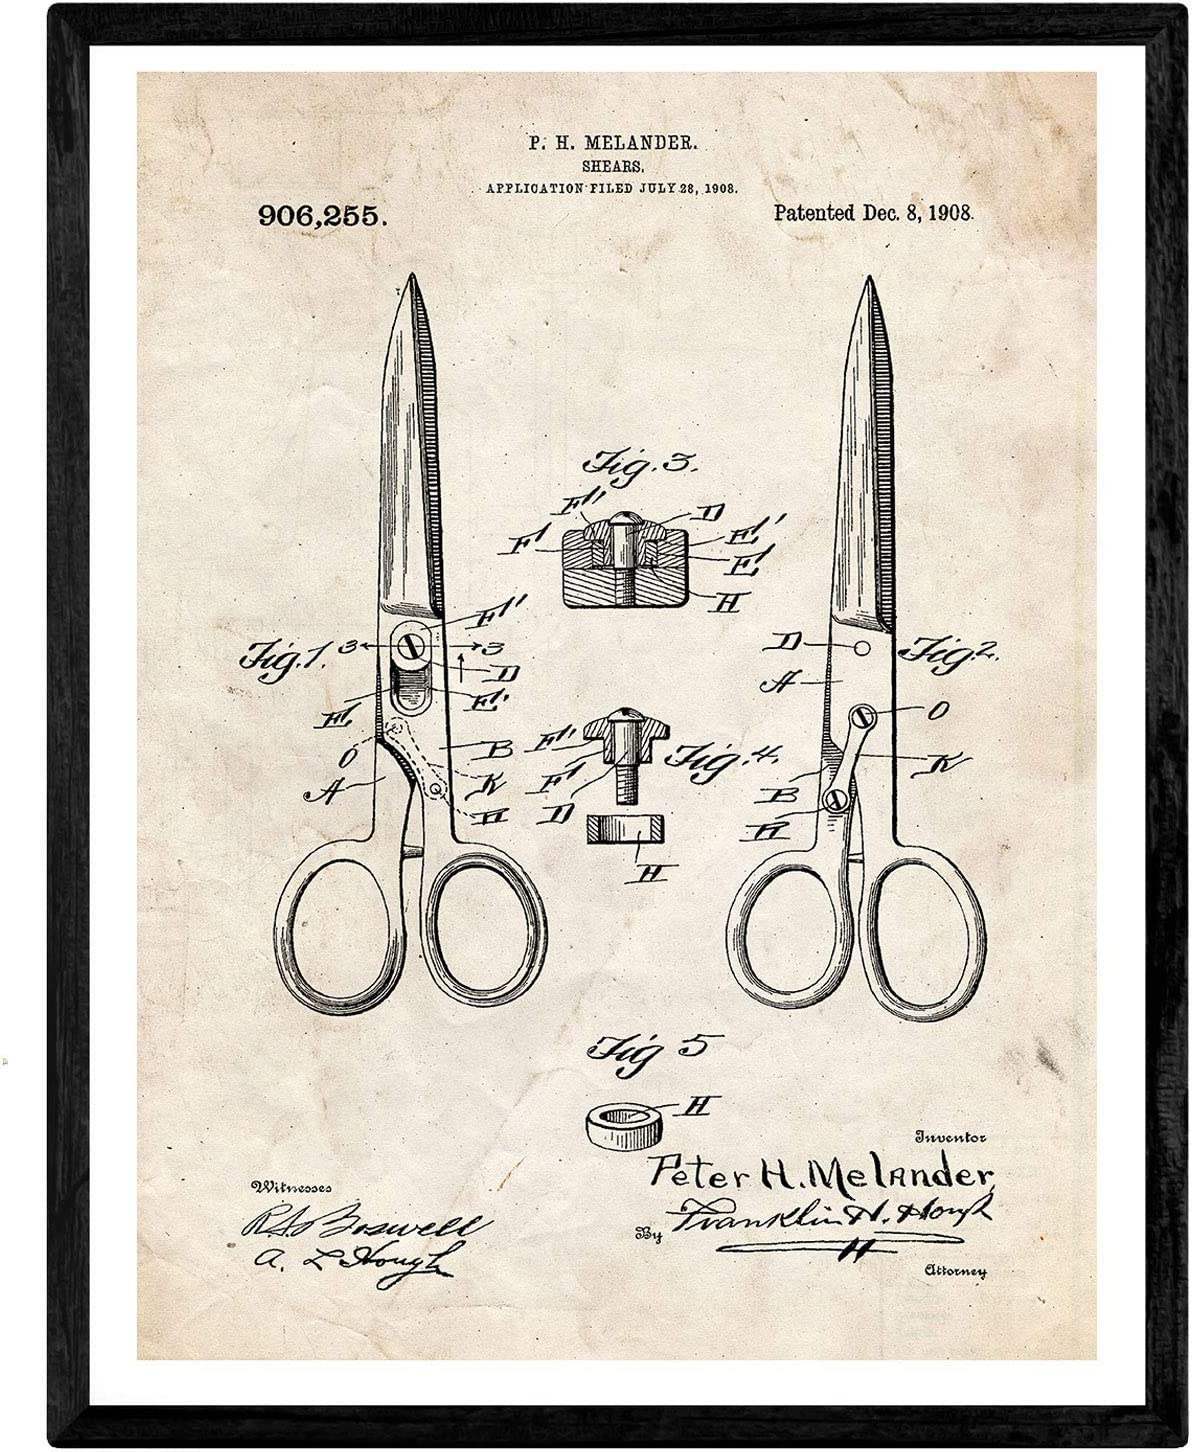 Nacnic Prints Vintage Patents Hairdressing Scissors - Set of 1 - Unframed 11x17 inch Size - 250g Paper - Beautiful Poster Painting for Home Office Living Room